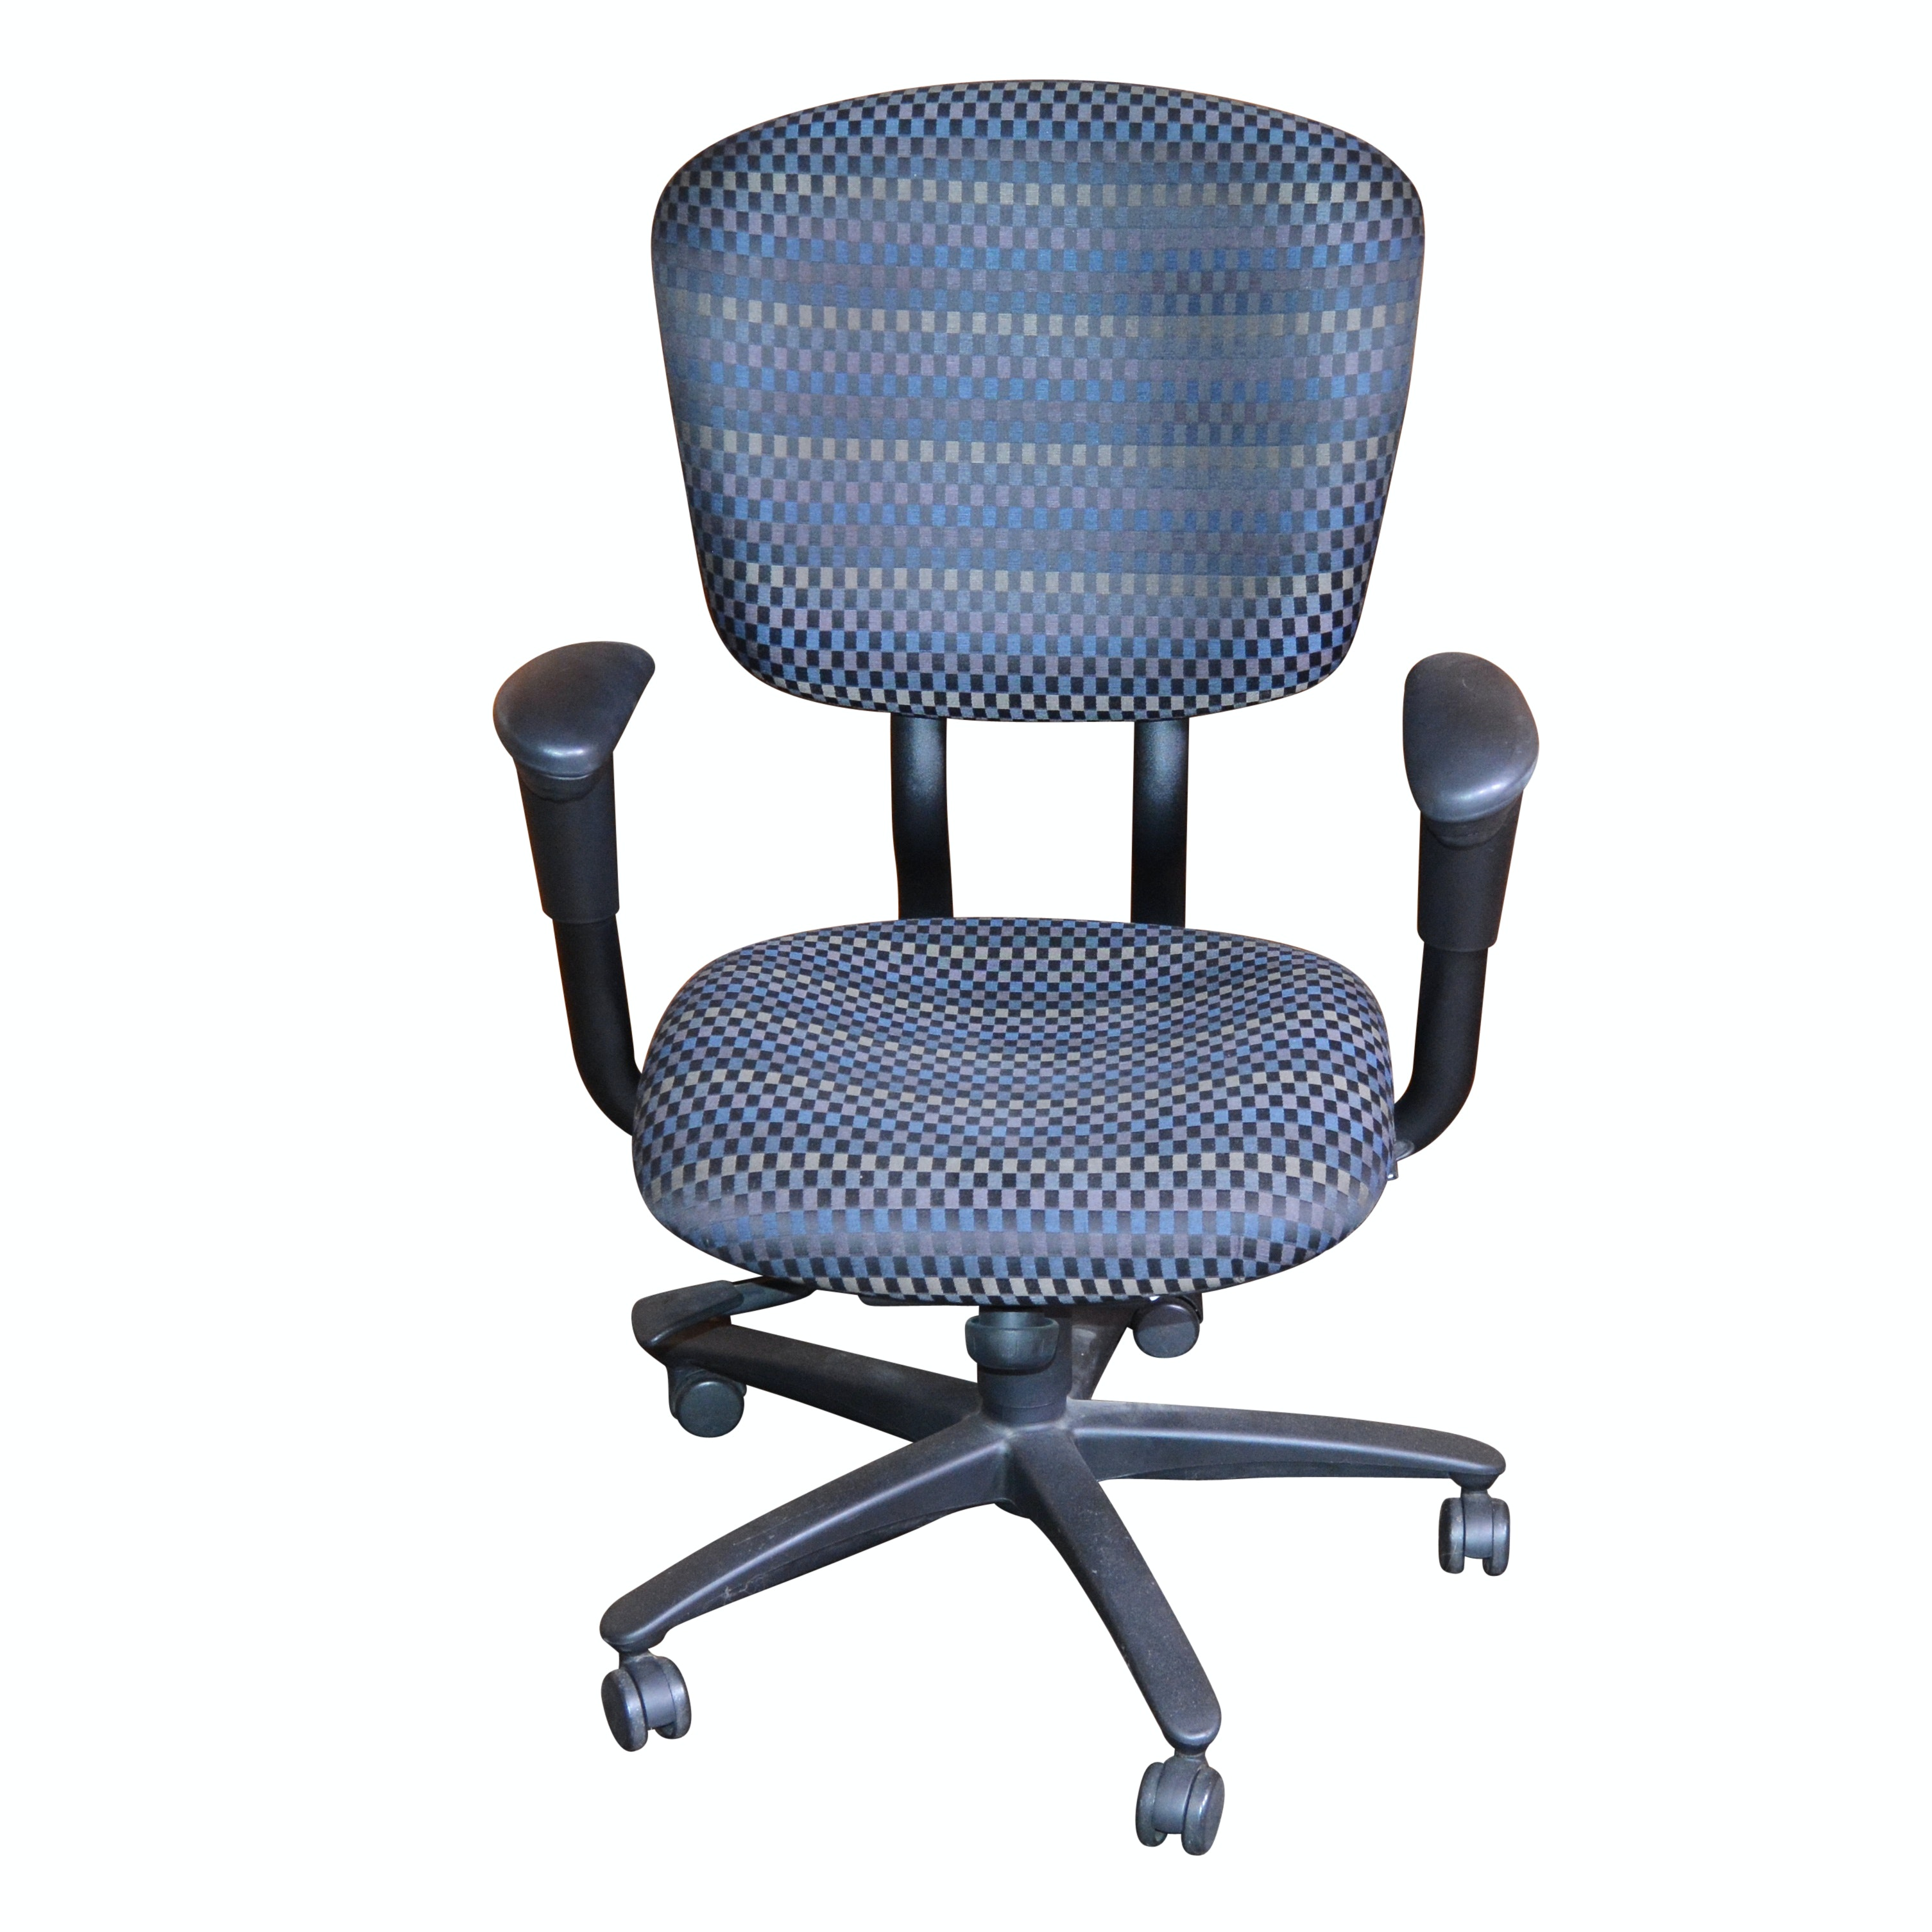 Upholstered Improv H.E. Ergonomic Office Task Chair by Haworth